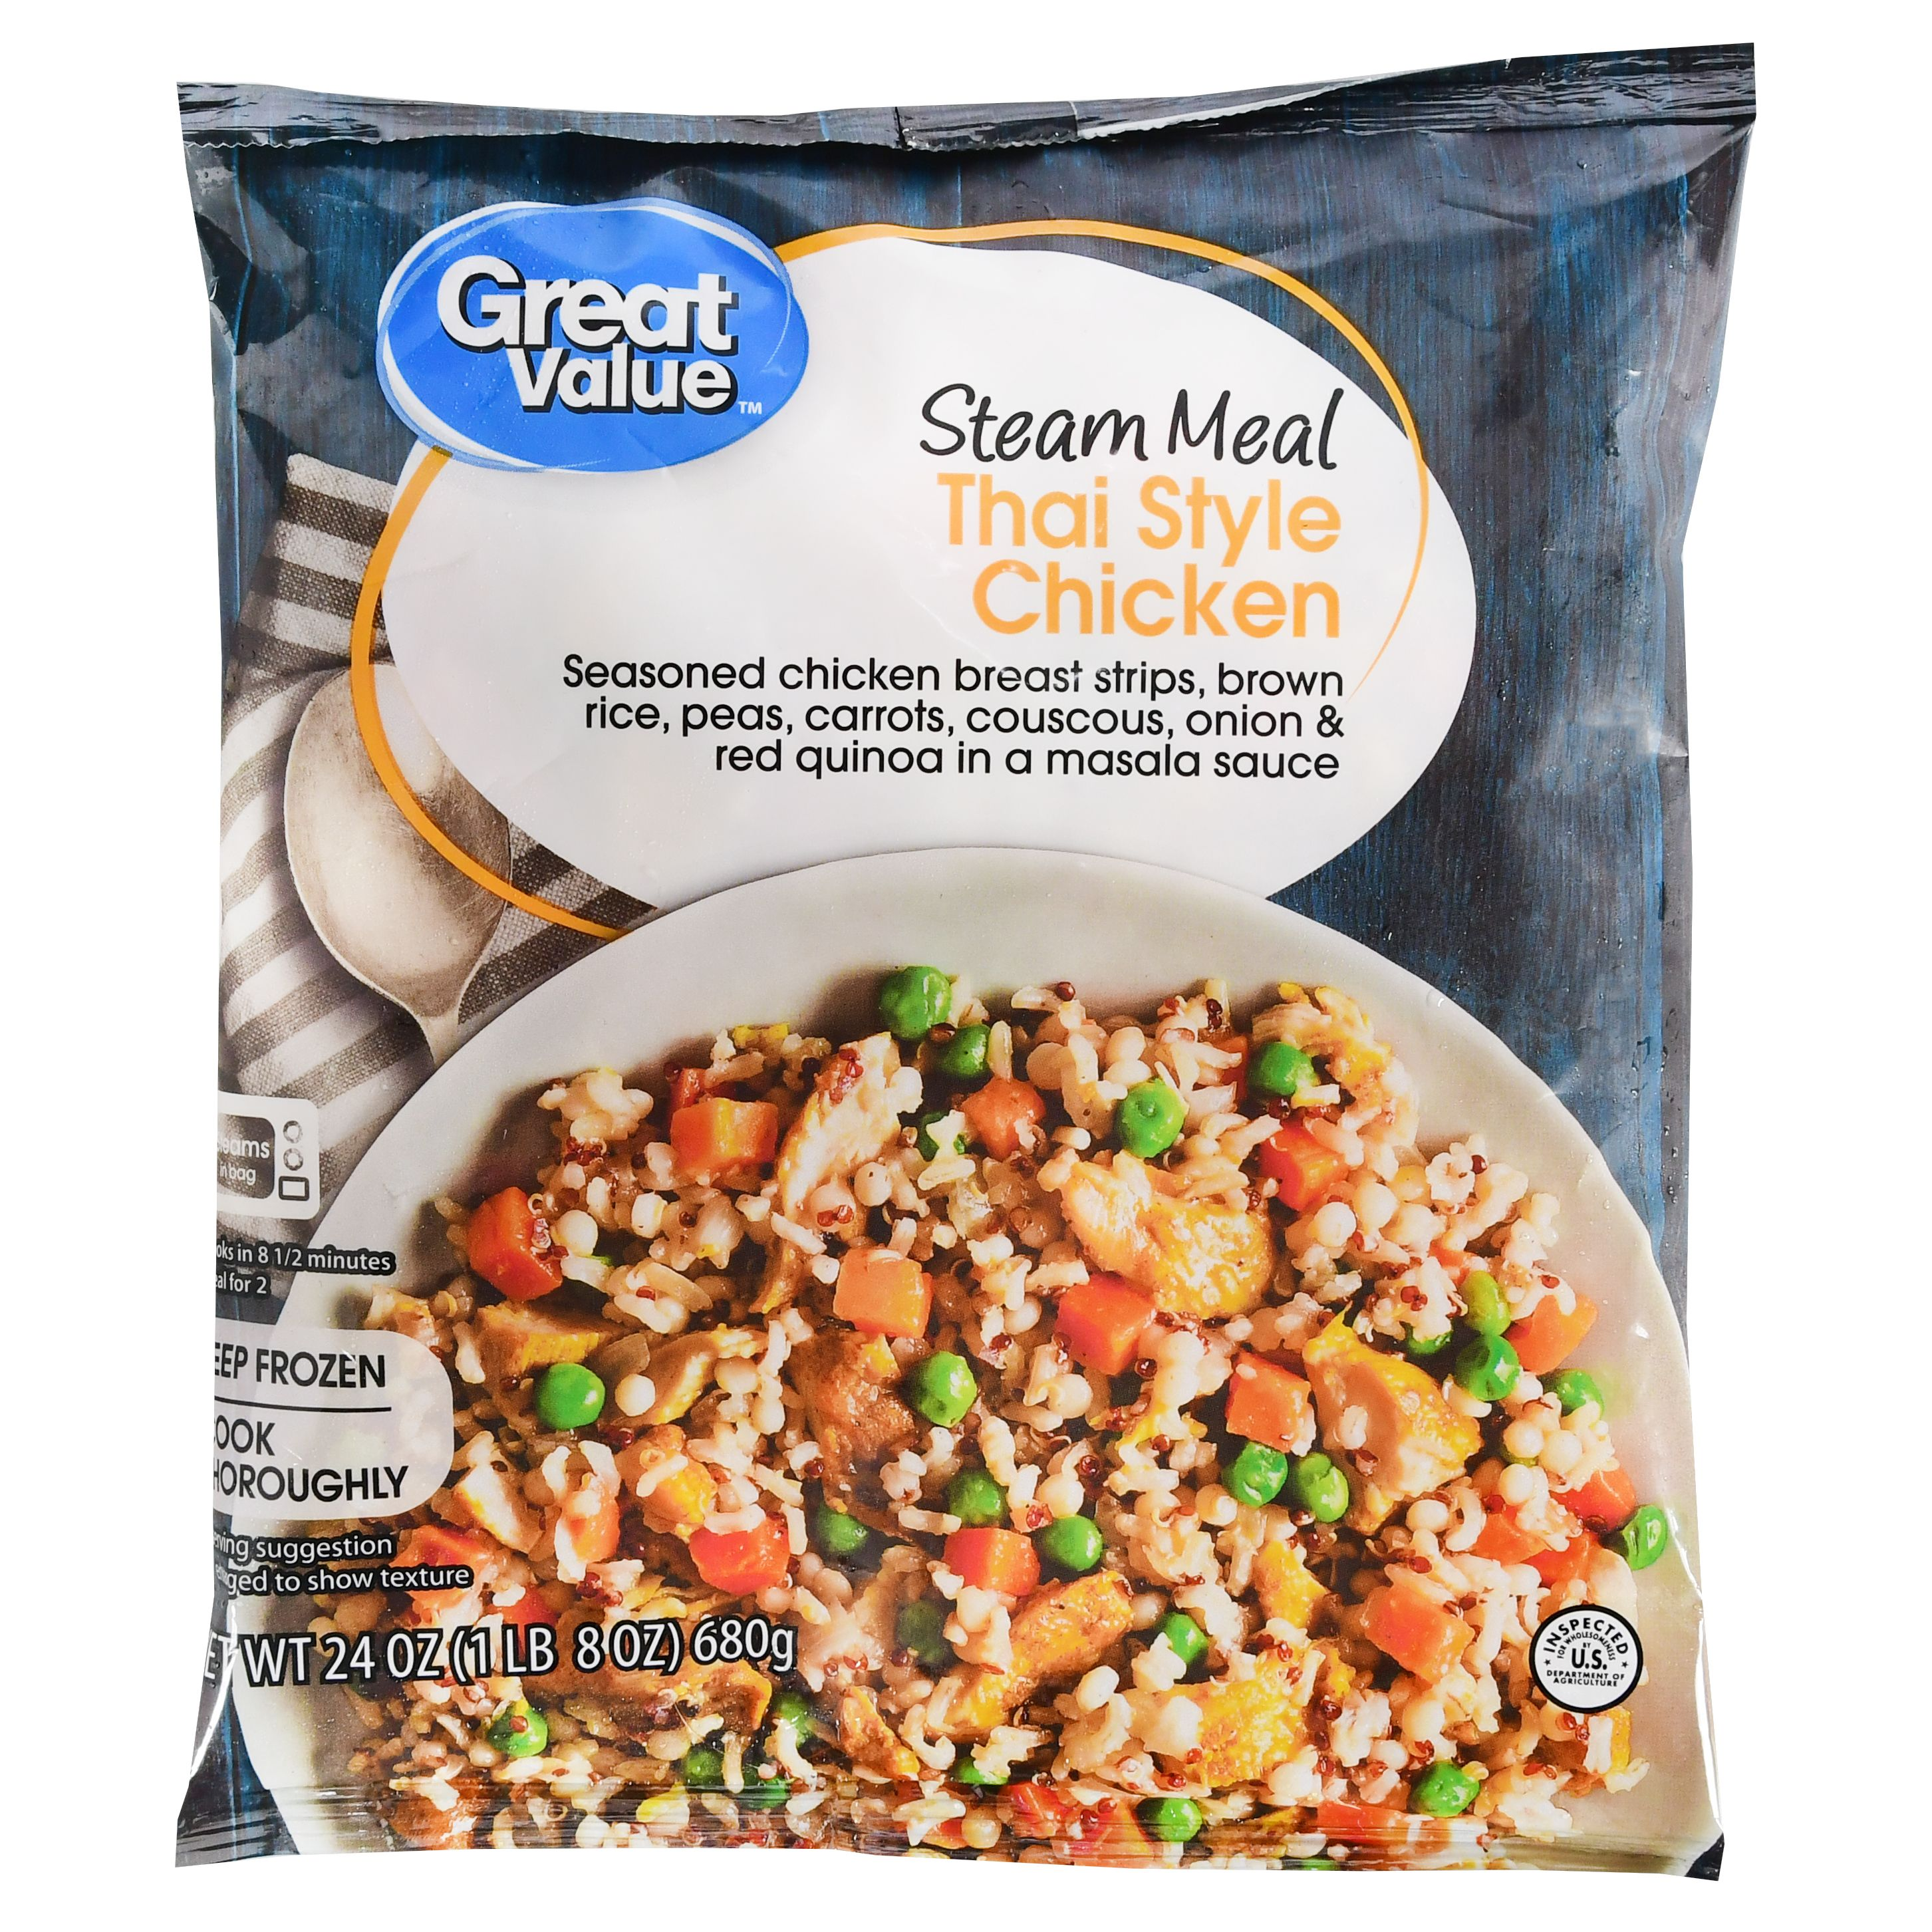 Great Value Thai Style Chicken, Steam Meal, 24 oz